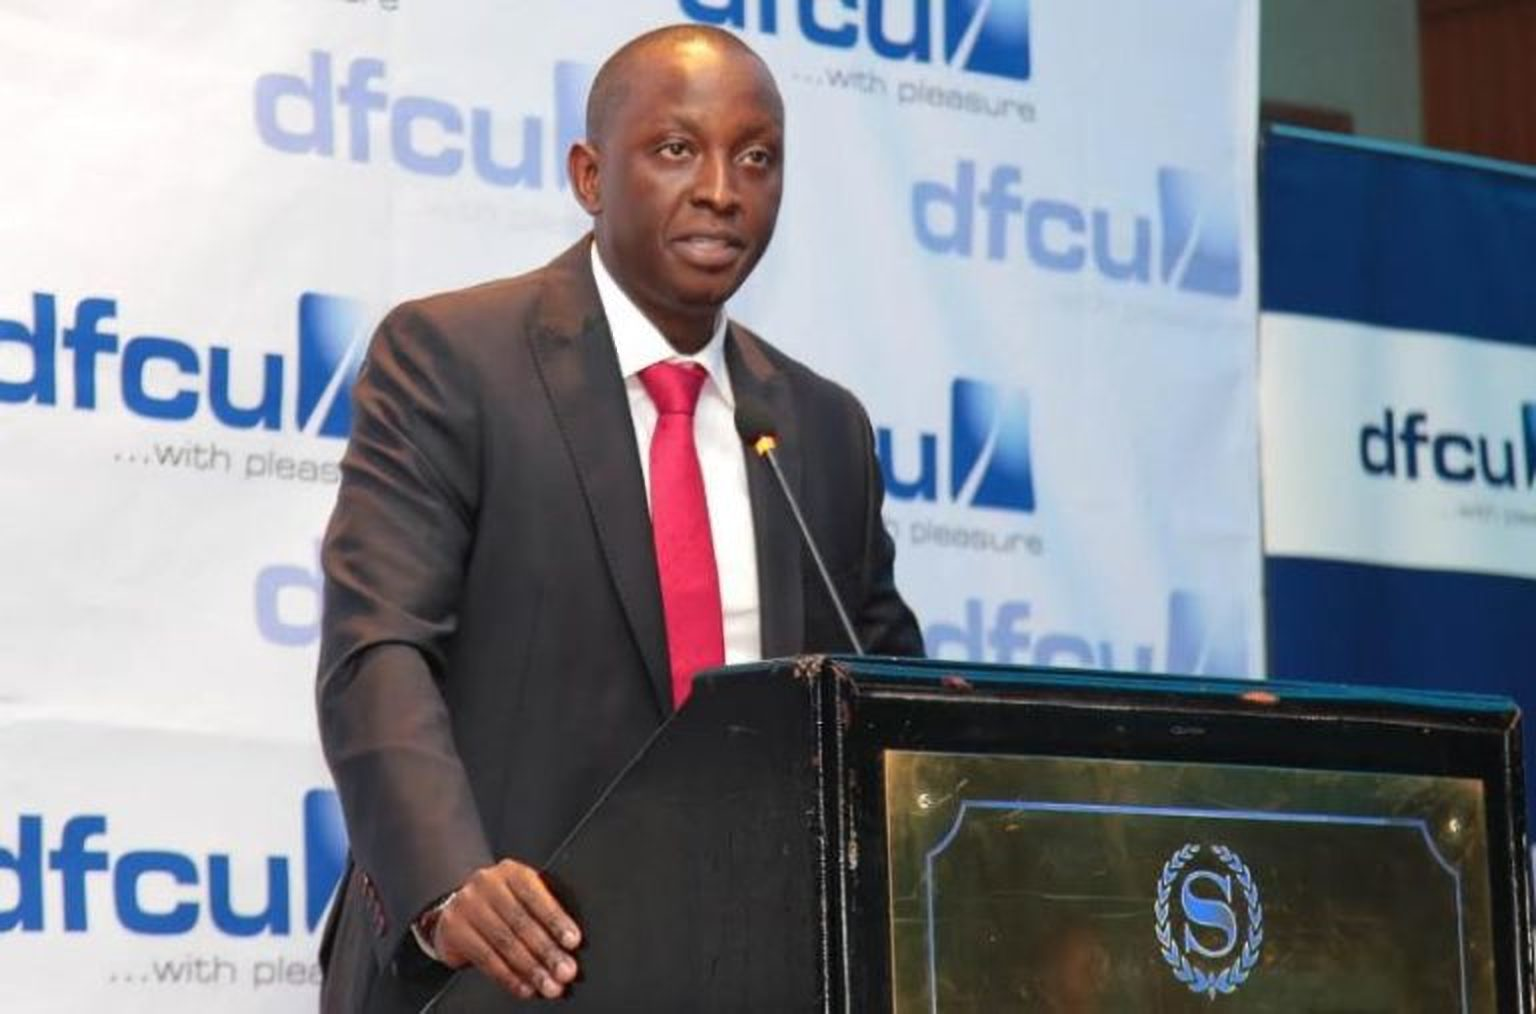 DFCU Chief of Business & Executive Director Mr William Ssekabembe has declined a lucrative offer at KCB bank to stay at DFCU Bank (FILE PHOTO)